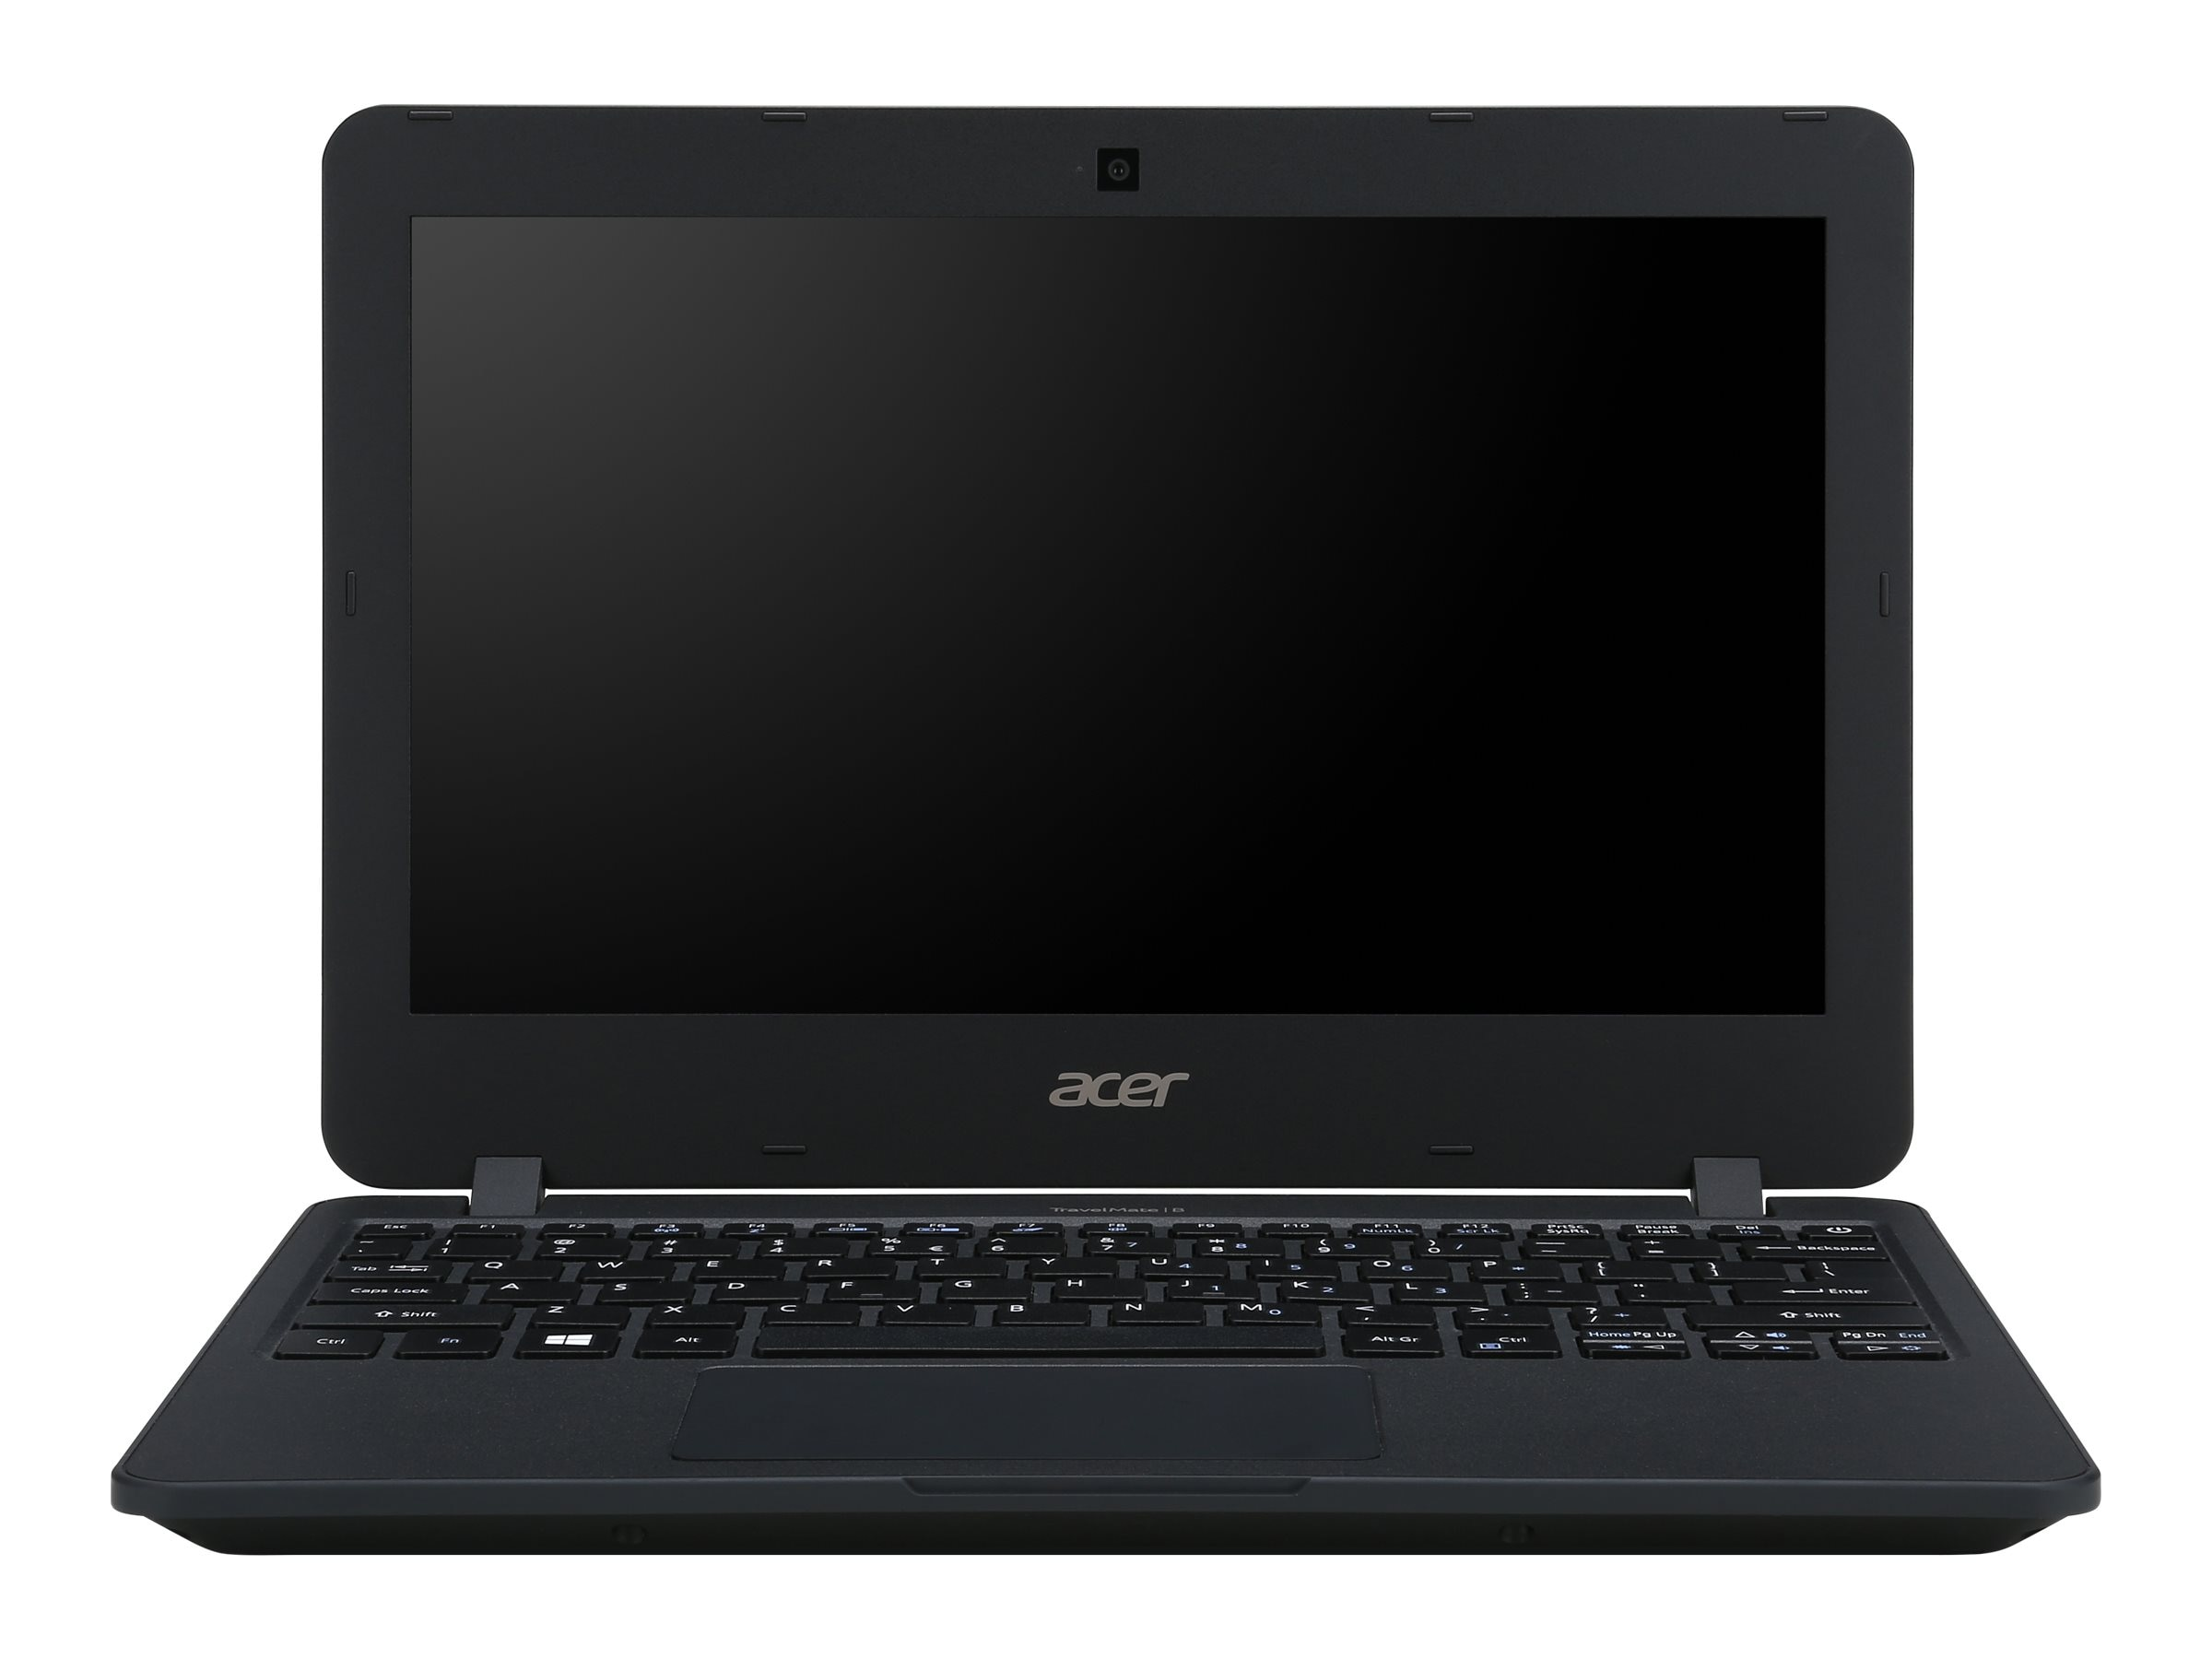 Acer TravelMate B117-M-C9GH 1.6GHz Celeron 11.6in display, NX.VCGAA.015